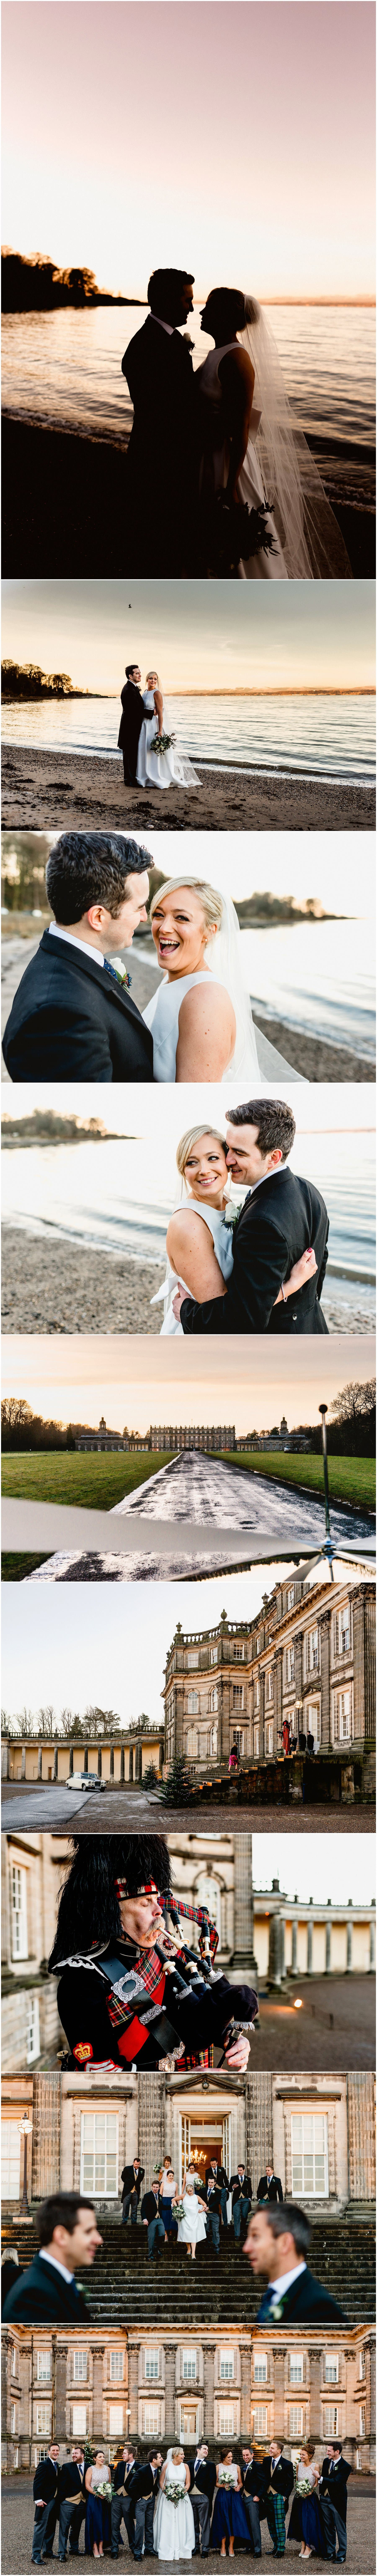 Bride and groom braving the cold in Jesus Piero dress on icy beach at the shores of South Queensferry for cold bridal portraits at golden hour.